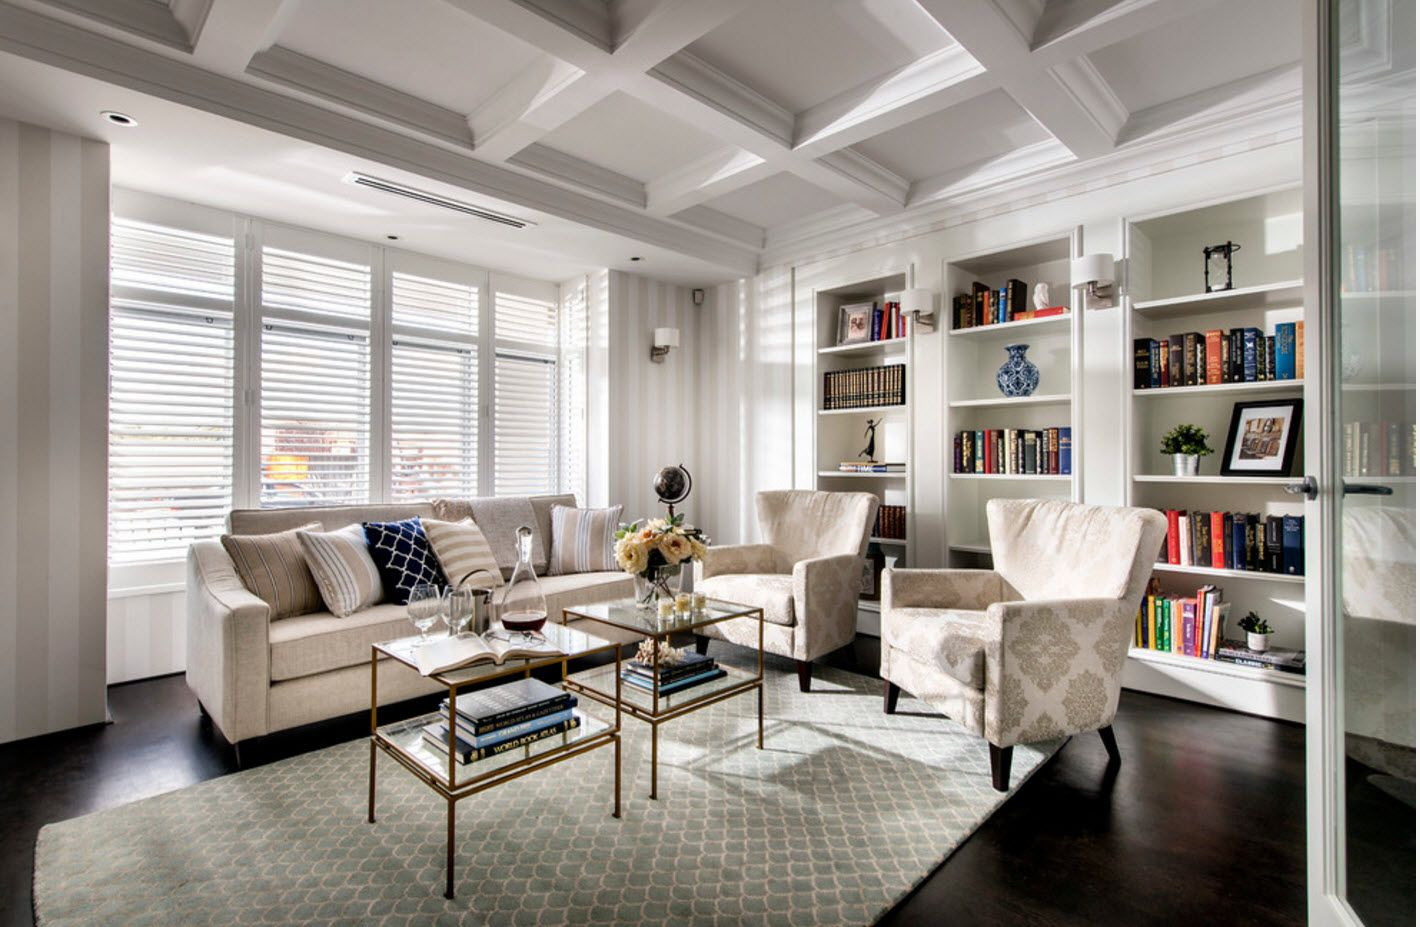 Wide and high spacious light-sinked living room in the studio apartment with reading zone